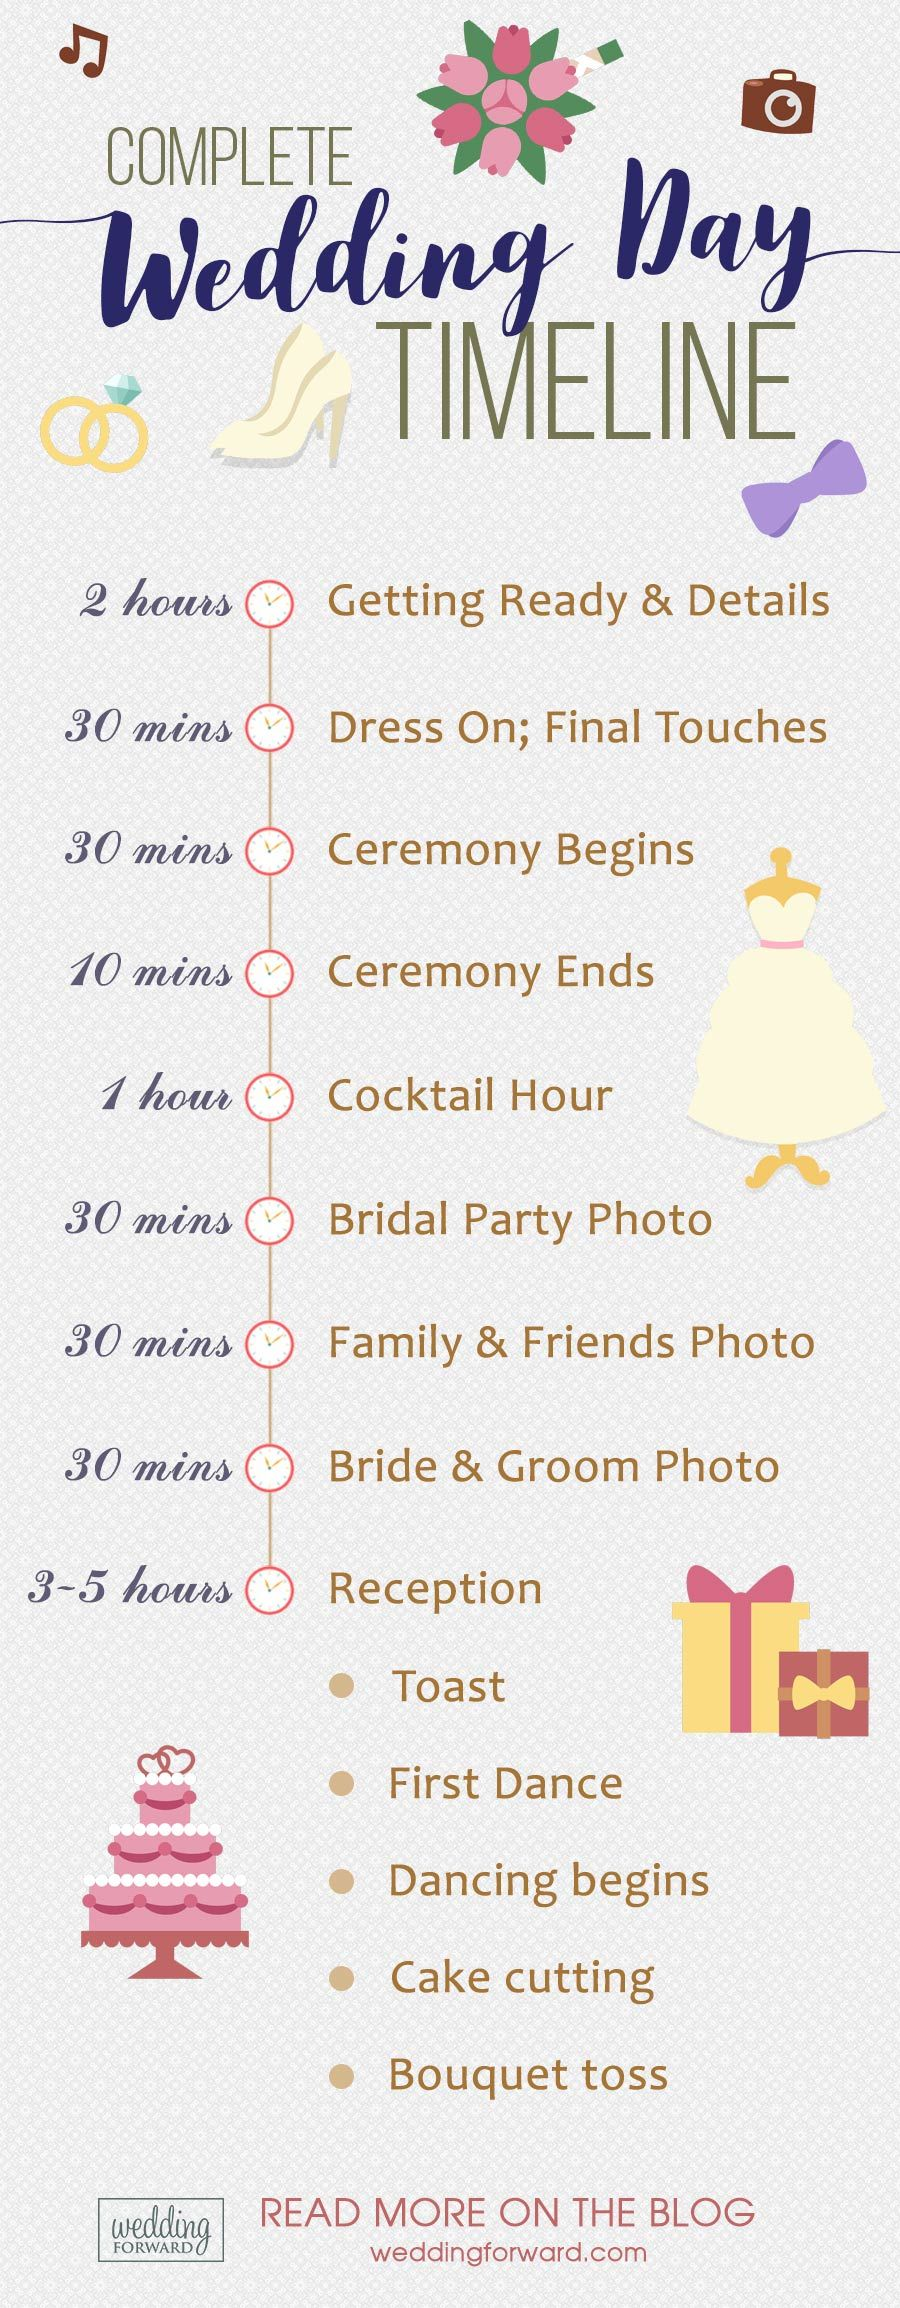 Wedding Day Timeline For Great Party In 2021 Wedding Forward Wedding Reception Timeline Wedding Day Timeline Wedding Day Checklist